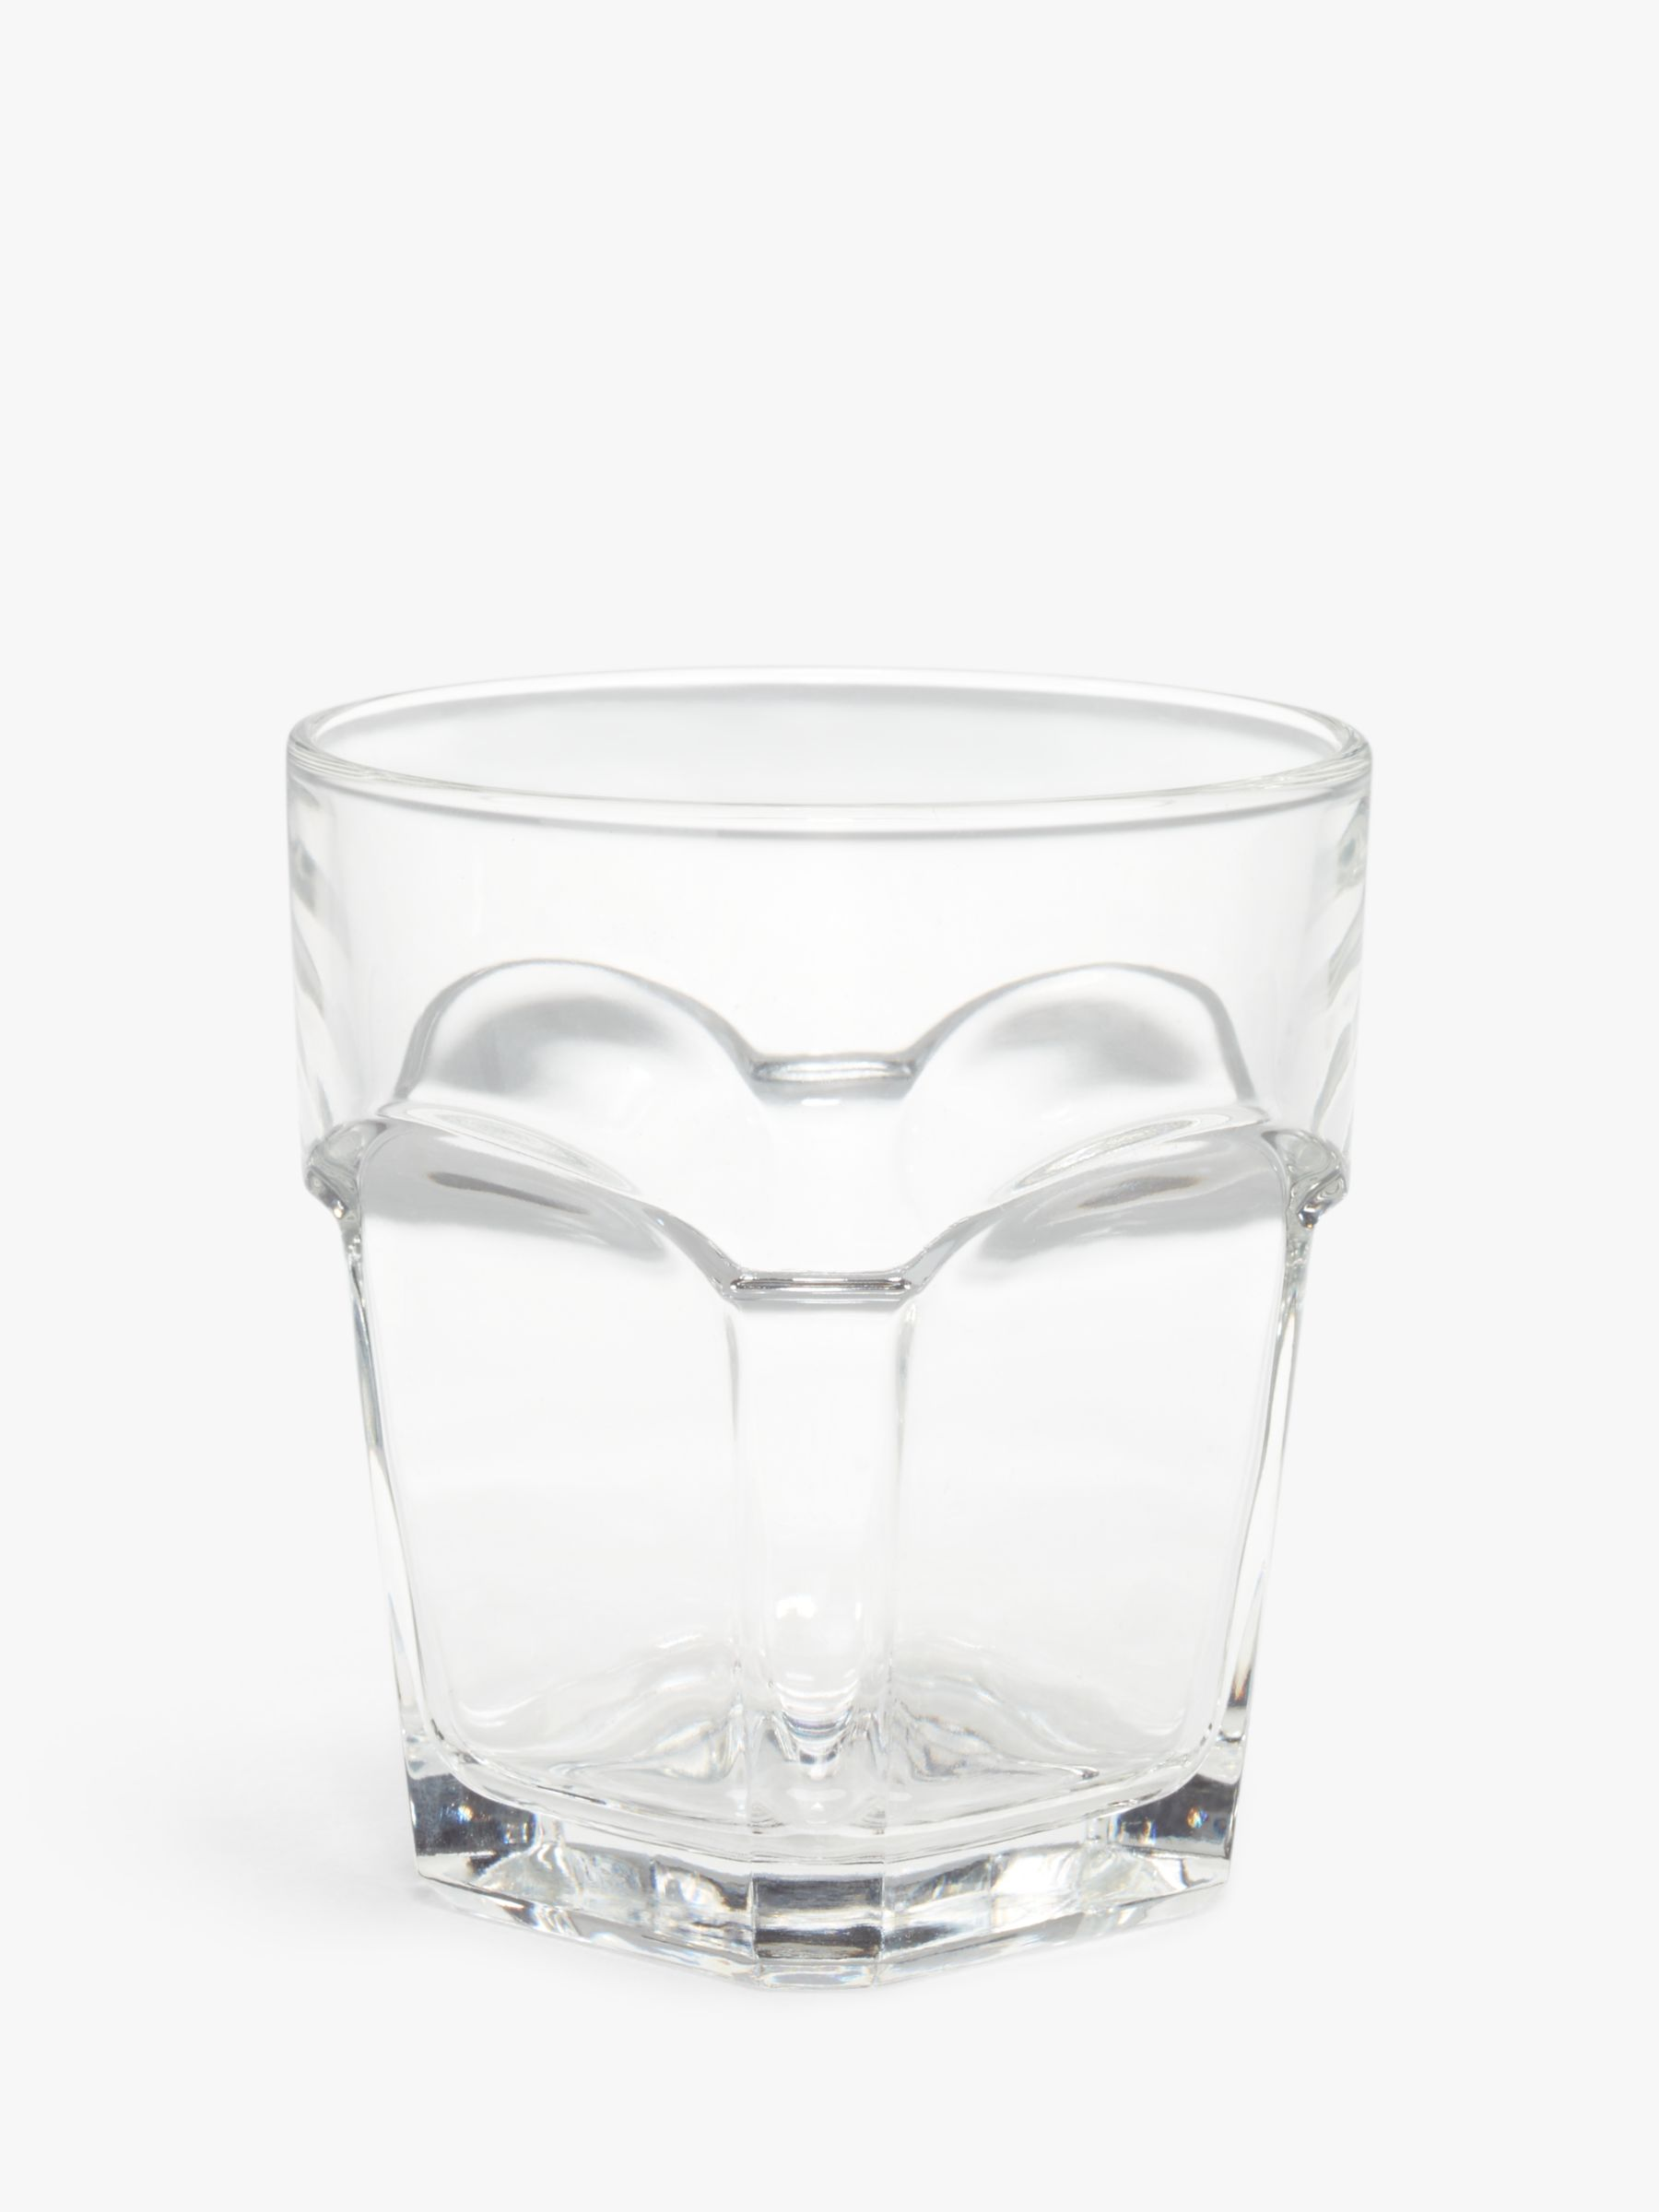 House by John Lewis House by John Lewis Stackable Glass Tumbler, Clear, 270ml